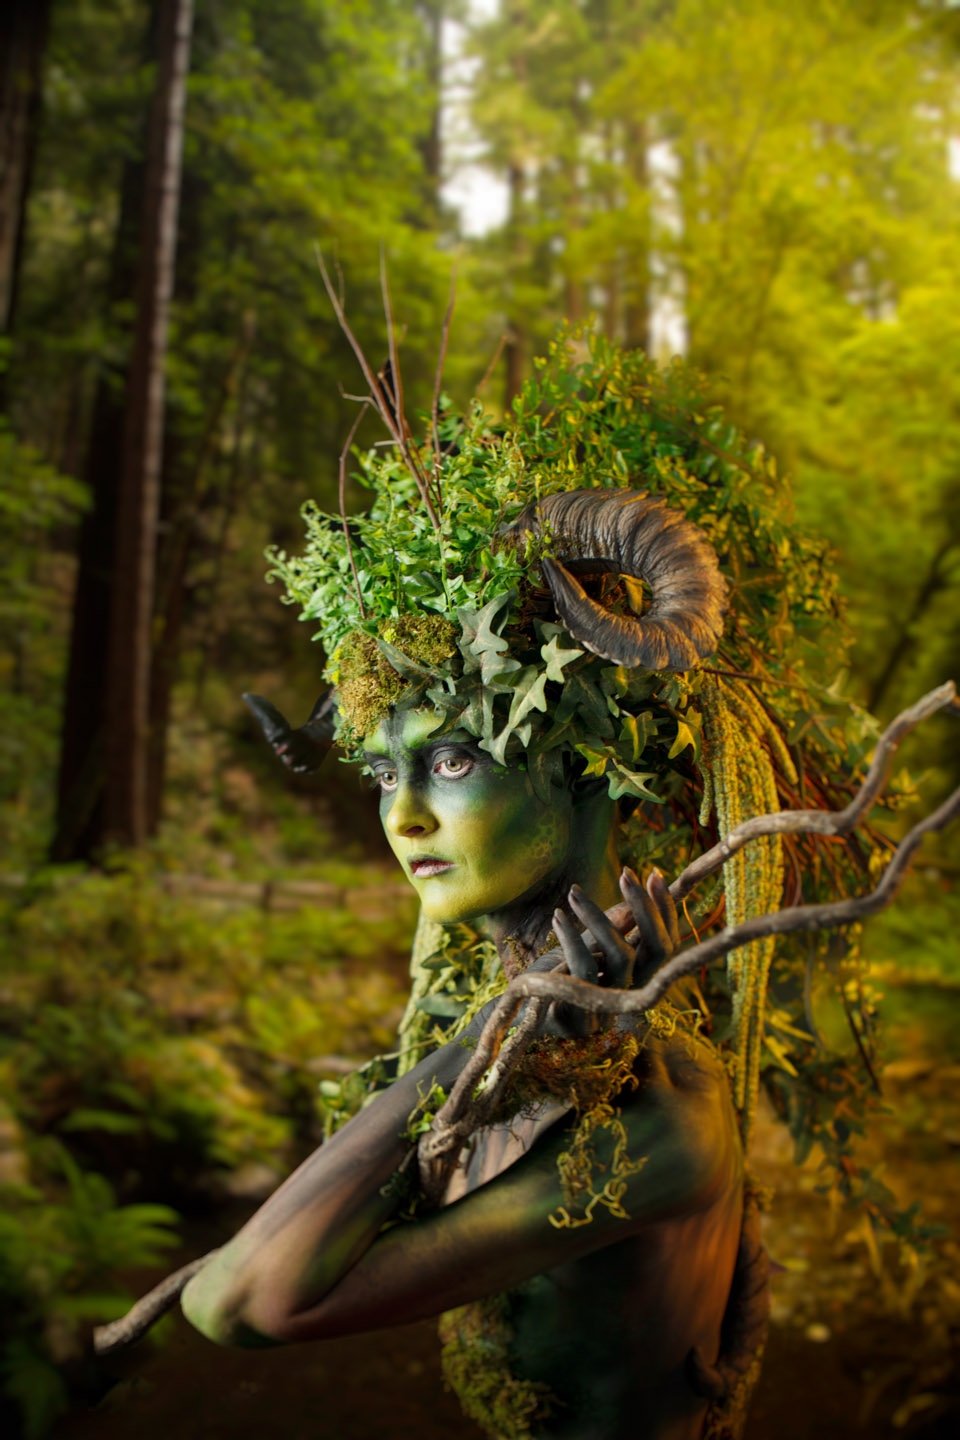 Model from Photoshop World added to forest scene in Photoshop